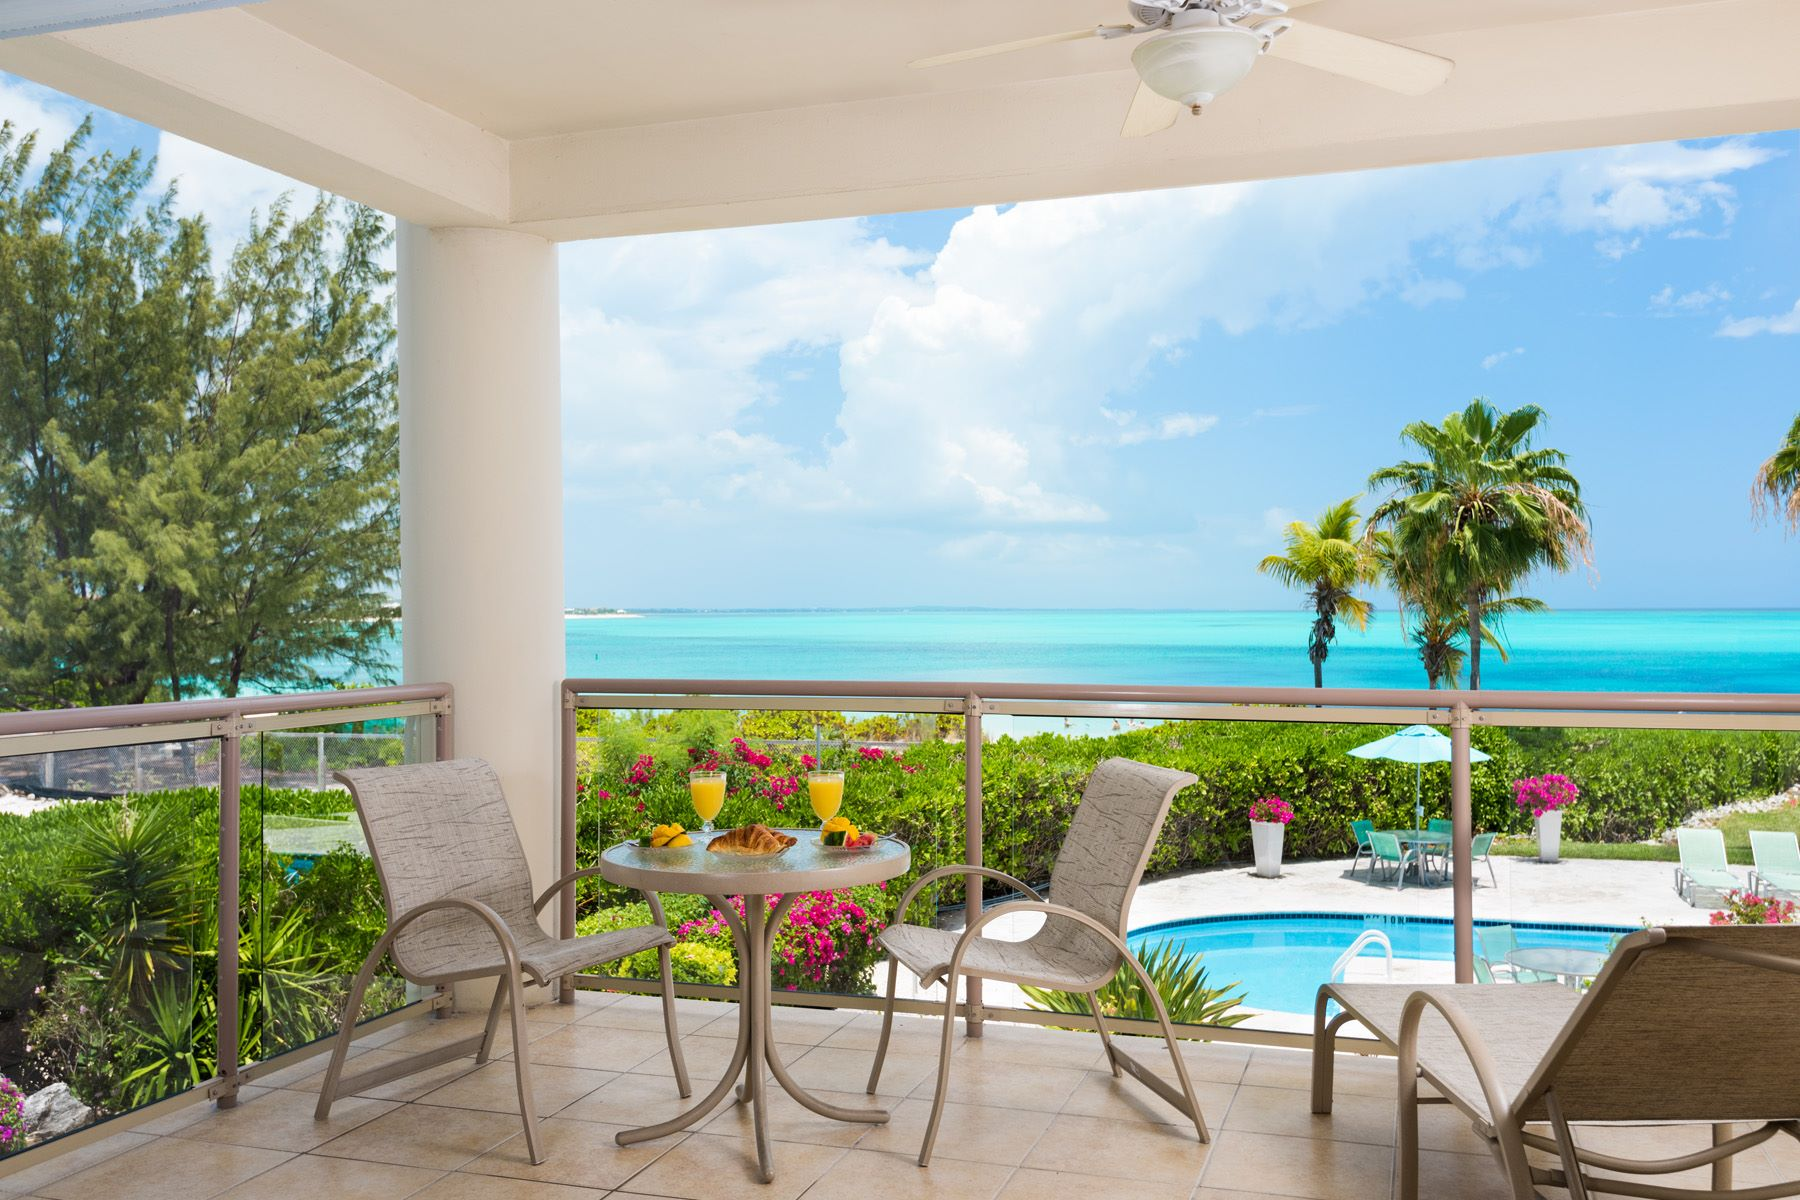 Additional photo for property listing at Coral Gardens - Suite 4202 Beachfront Grace Bay, Providenciales TC Islas Turcas Y Caicos